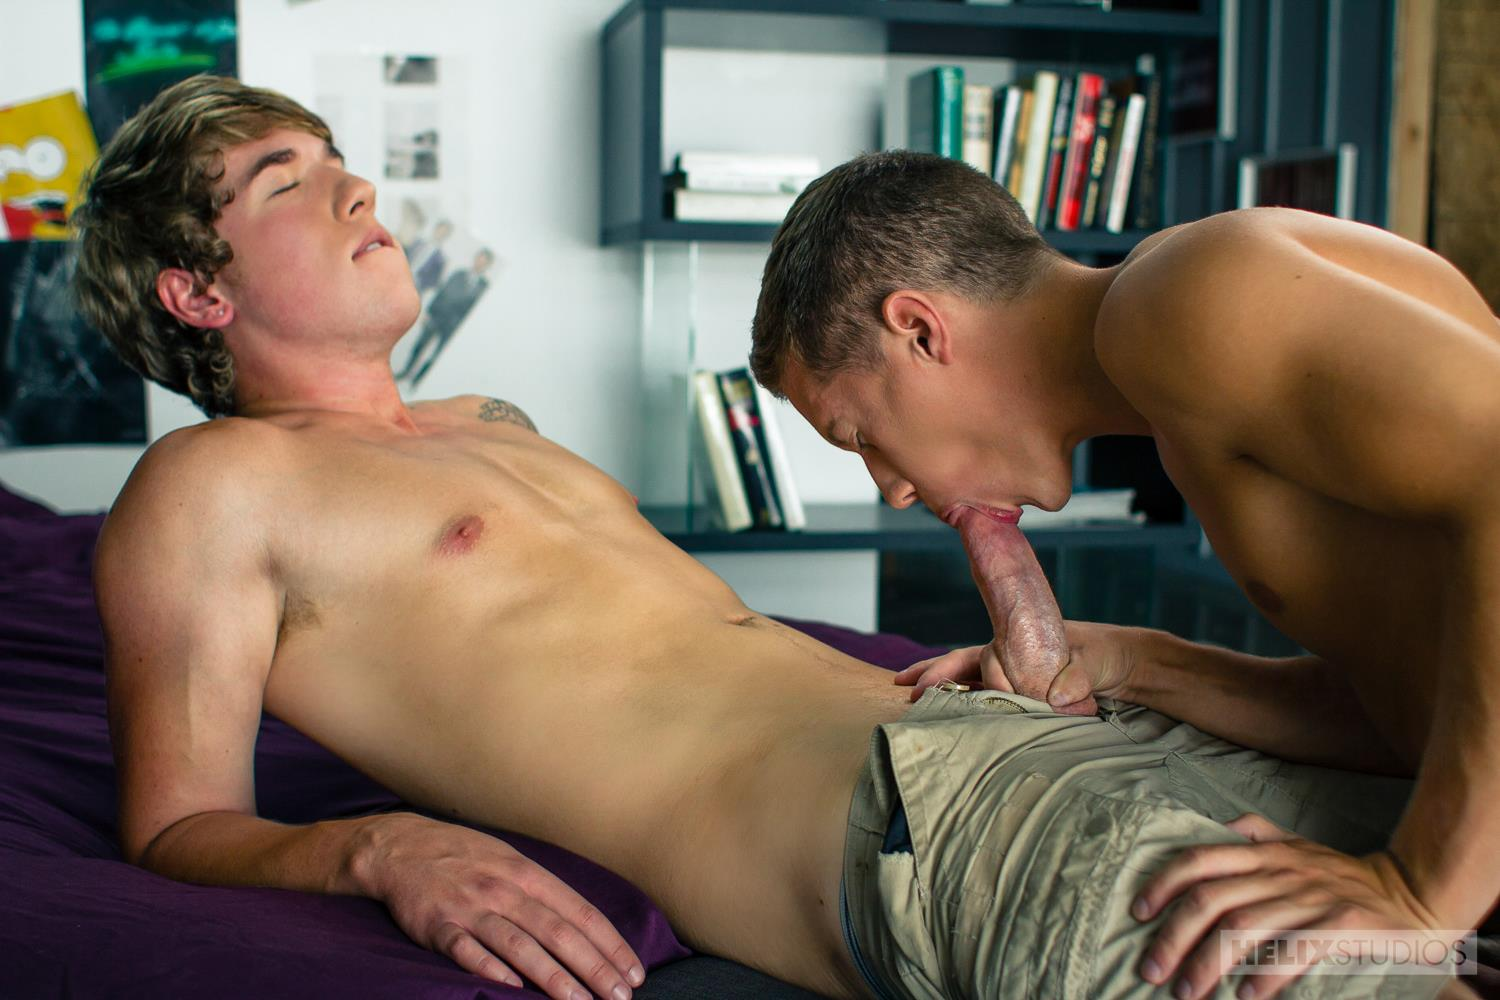 Helix-Studios-Tyler-Hill-and-Lukas-Grande-Straight-Big-Cock-Jock-Fucking-A-Twink-Amateur-Gay-Porn-05 Straight American College Jock Fucking A Twink With A Big Thick Cock